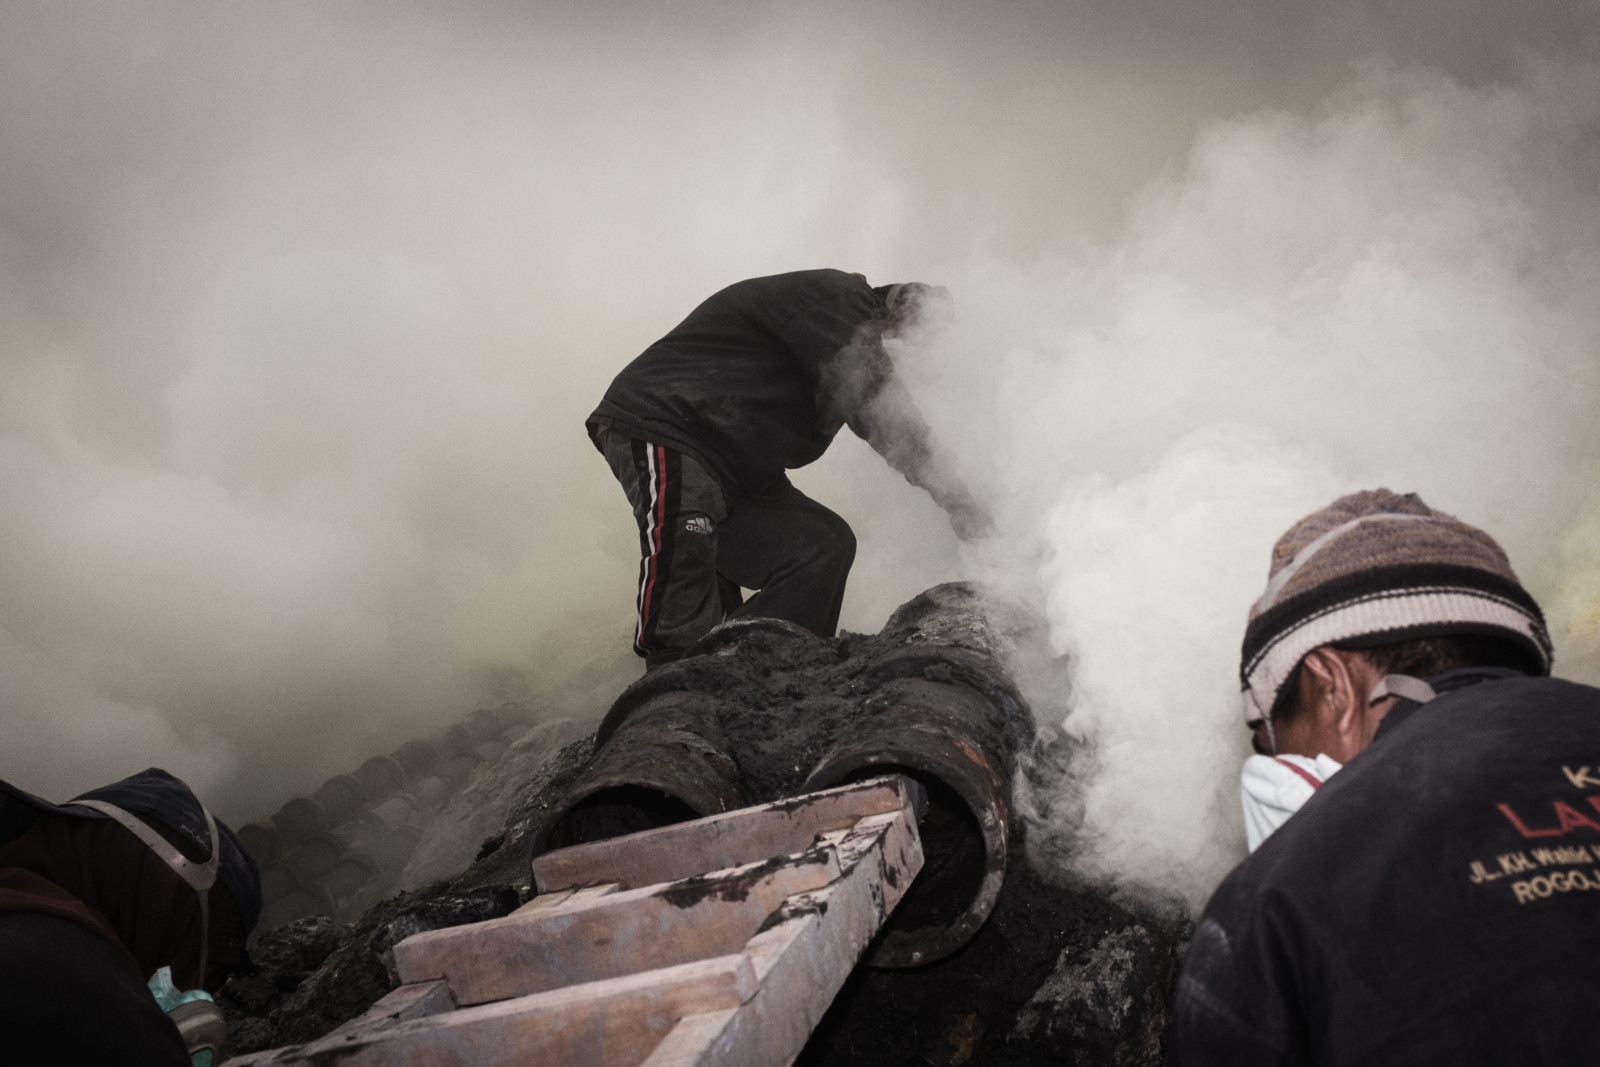 Documentary Photography - Sulfur Miners